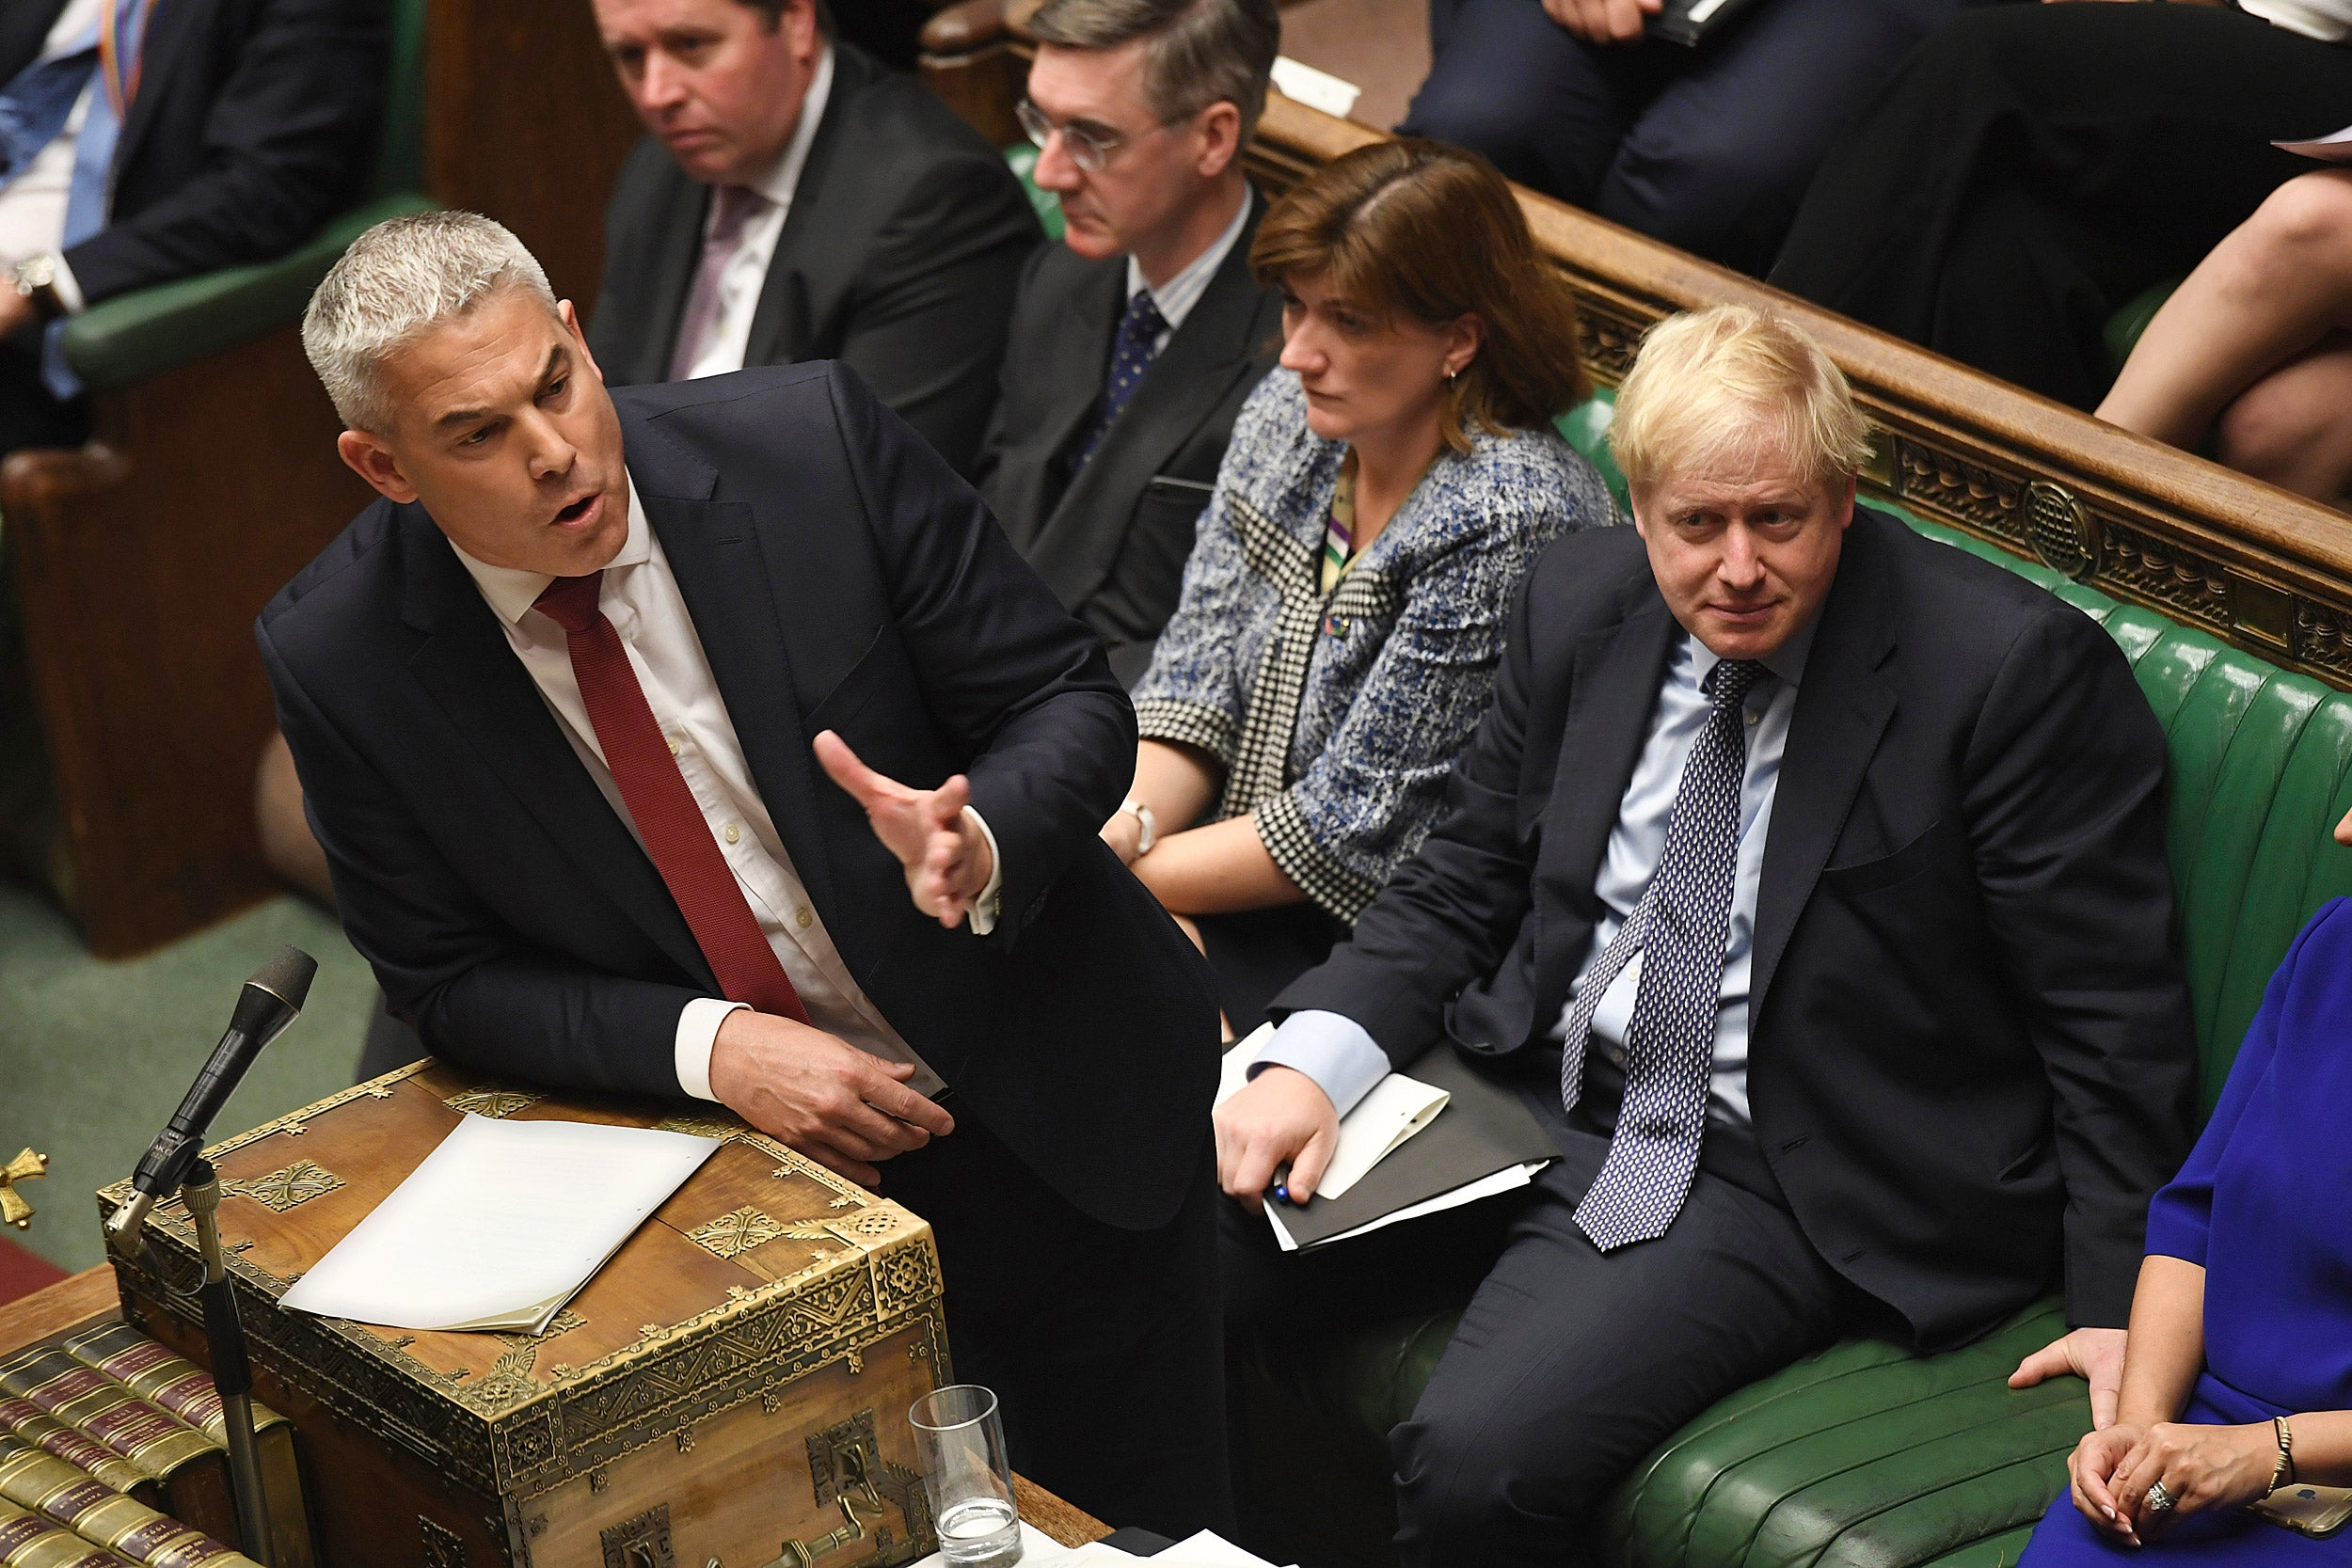 Brexit on the edge: House of Lords member talks about what to watch for next